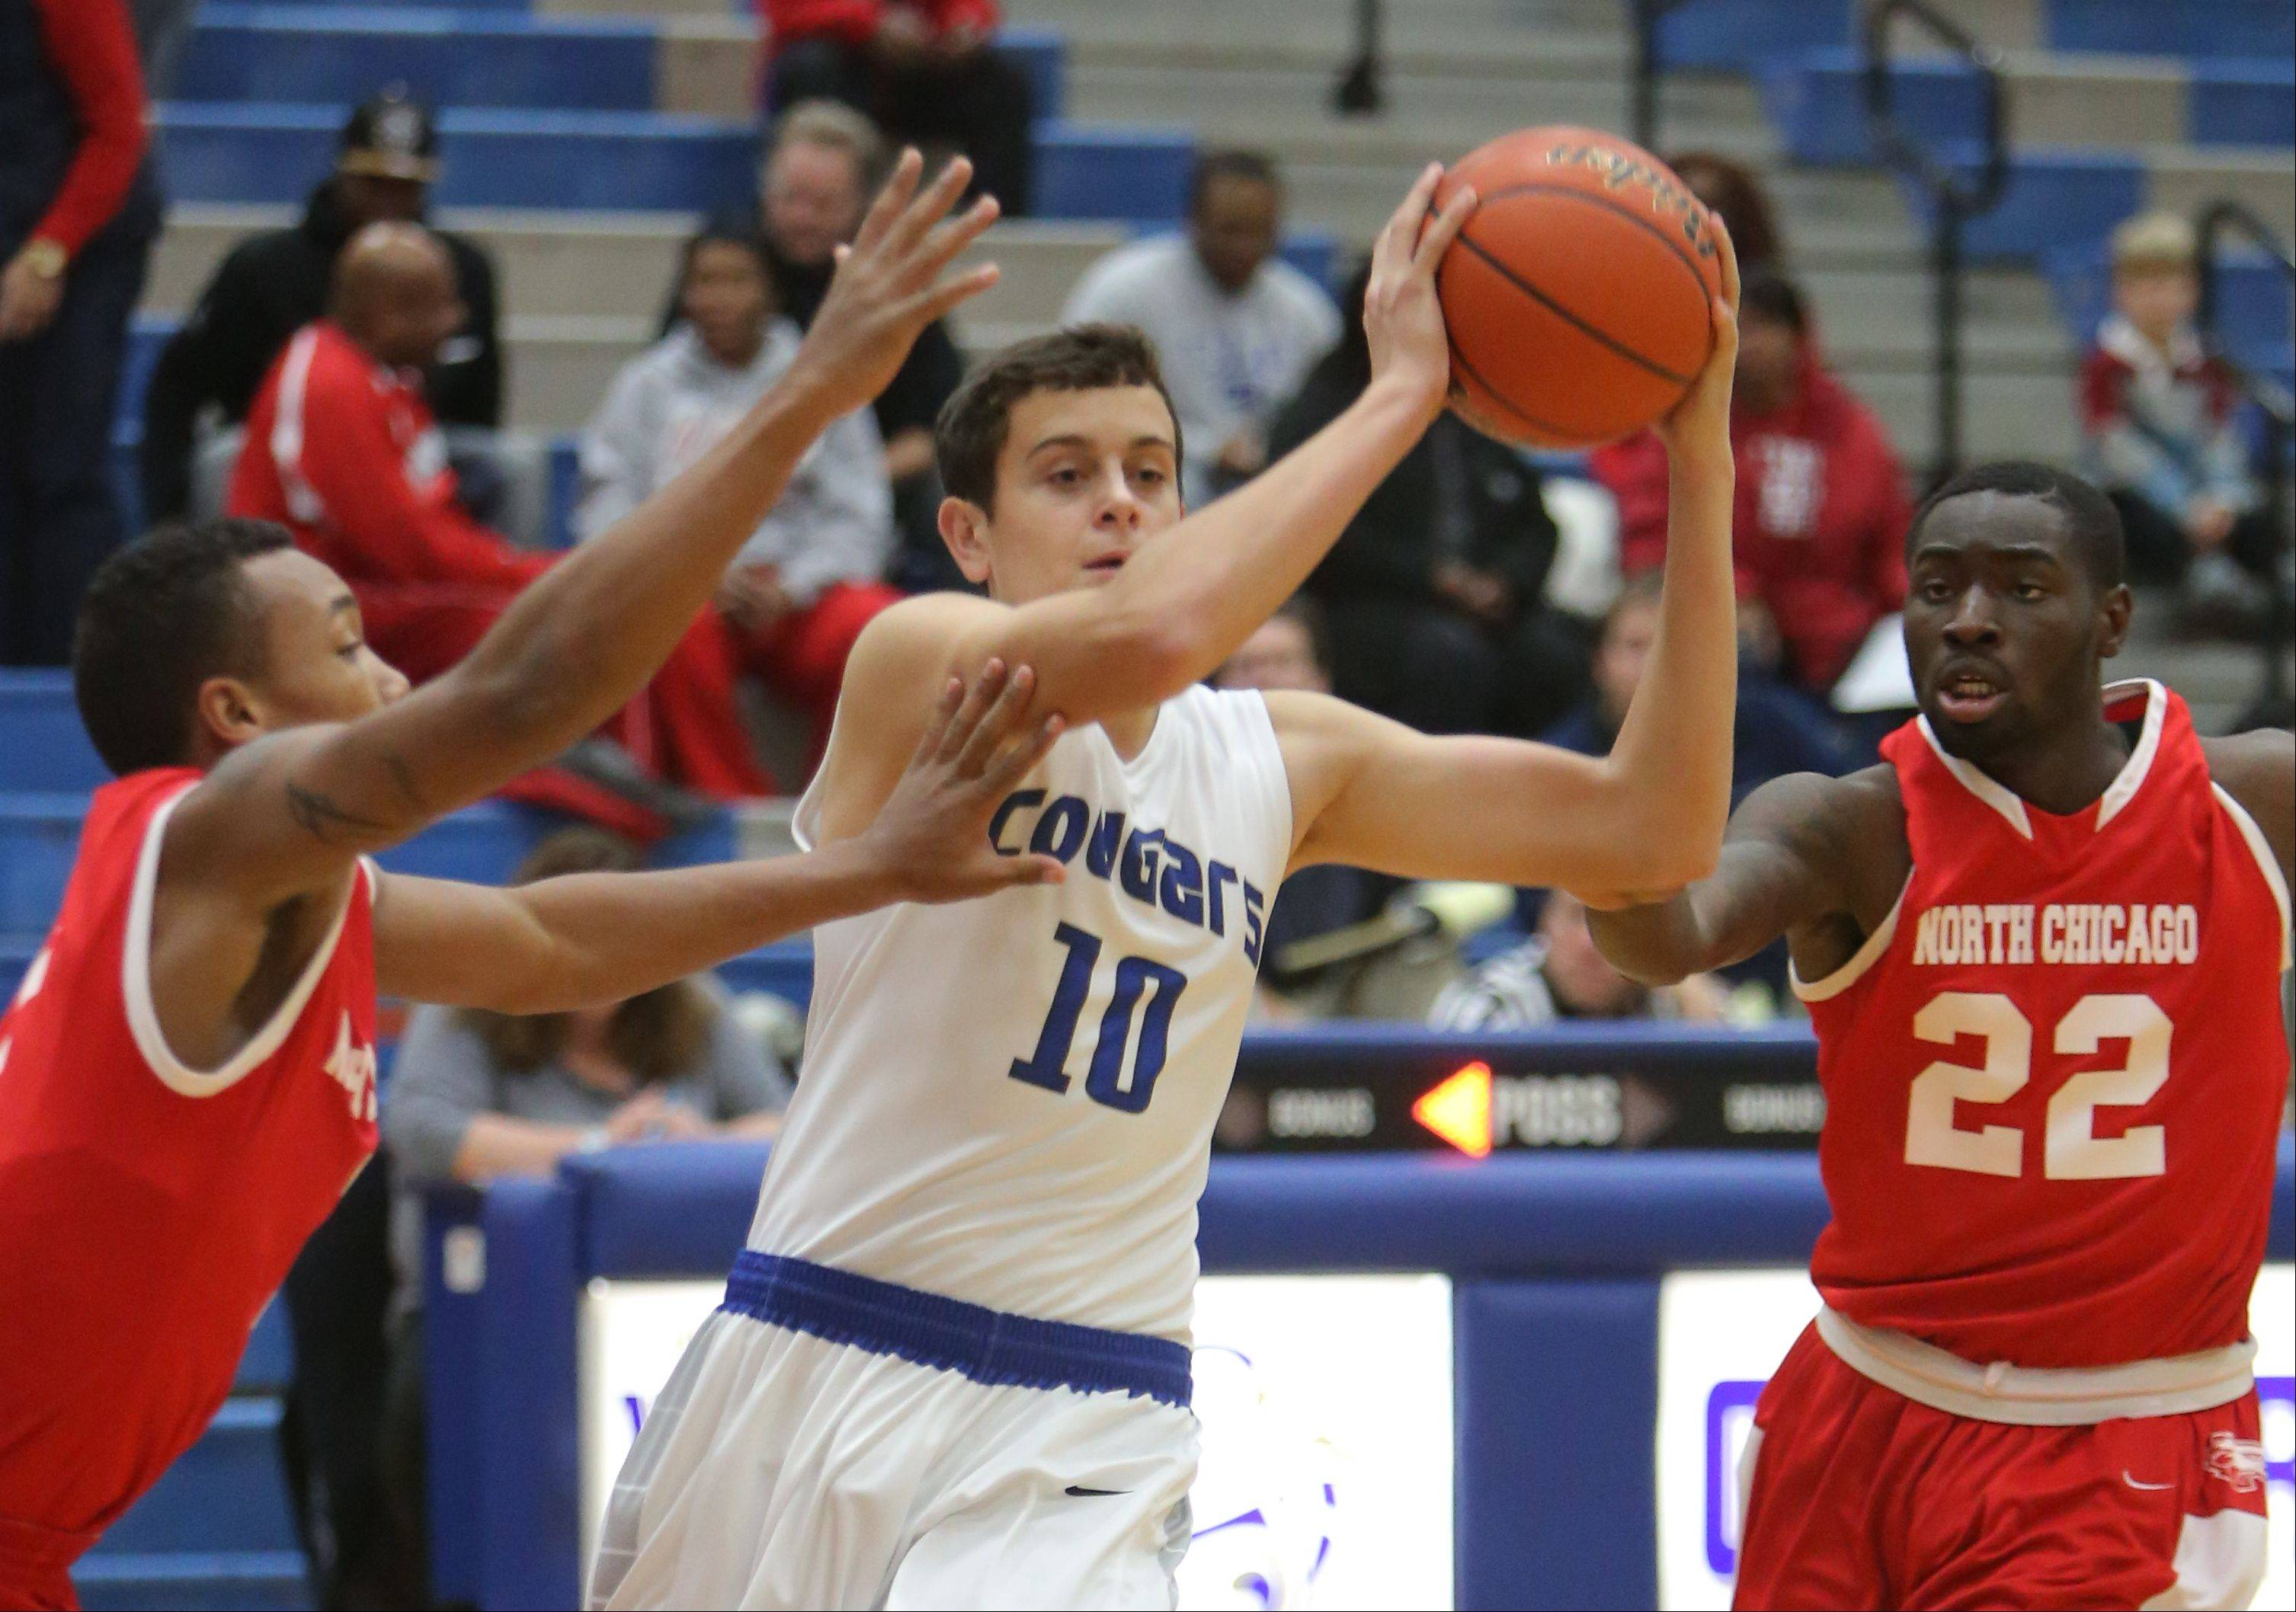 Images: Vernon Hills vs. North Chicago boys basketball